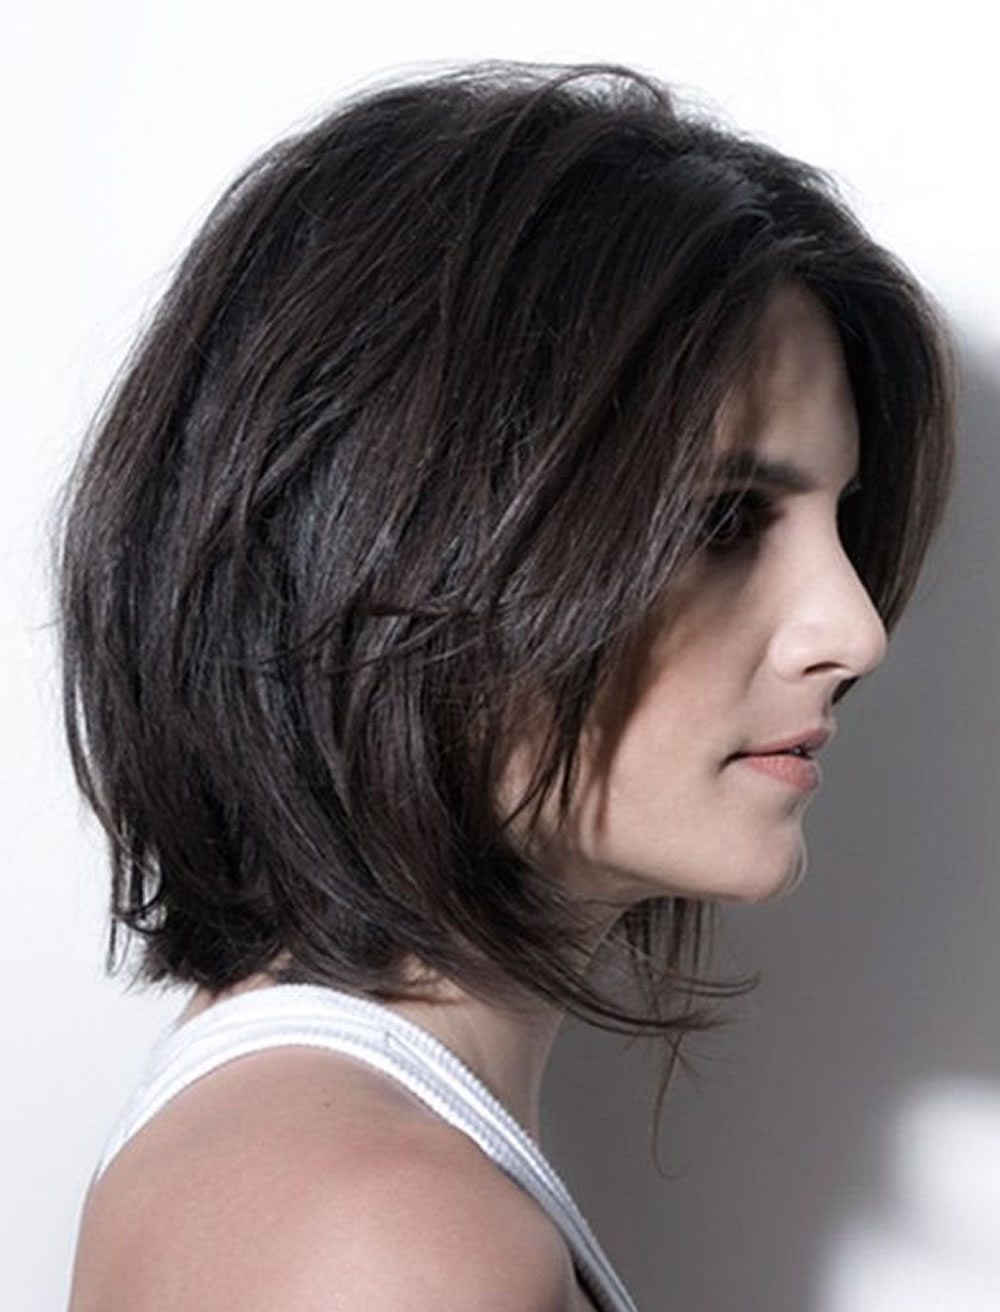 2018 Short Haircut Trends & Short Hairstyle Ideas For Women – Page 3 intended for Short Haircut Trends For 2018